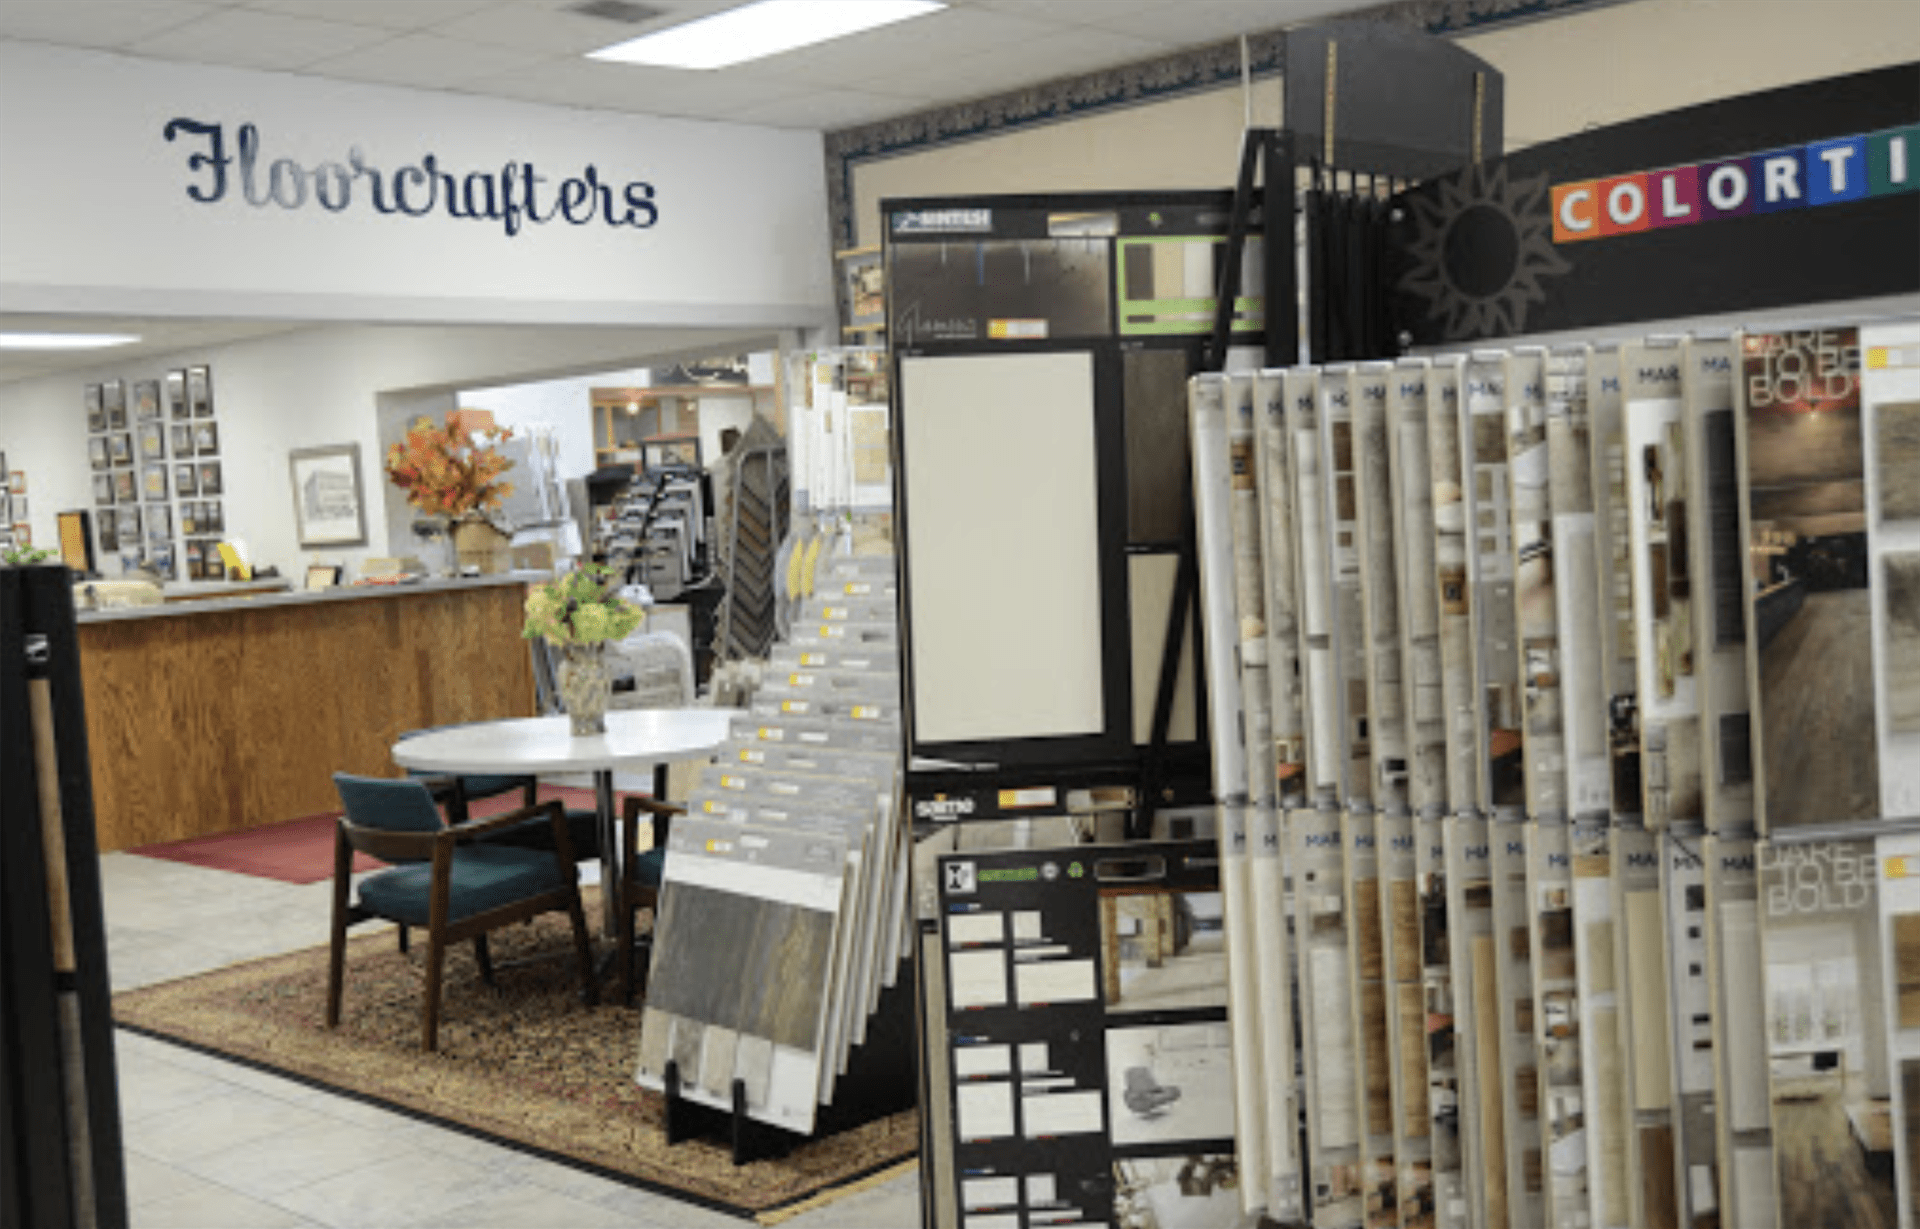 Floorcrafters - Moline showroom in Rock Island, IL